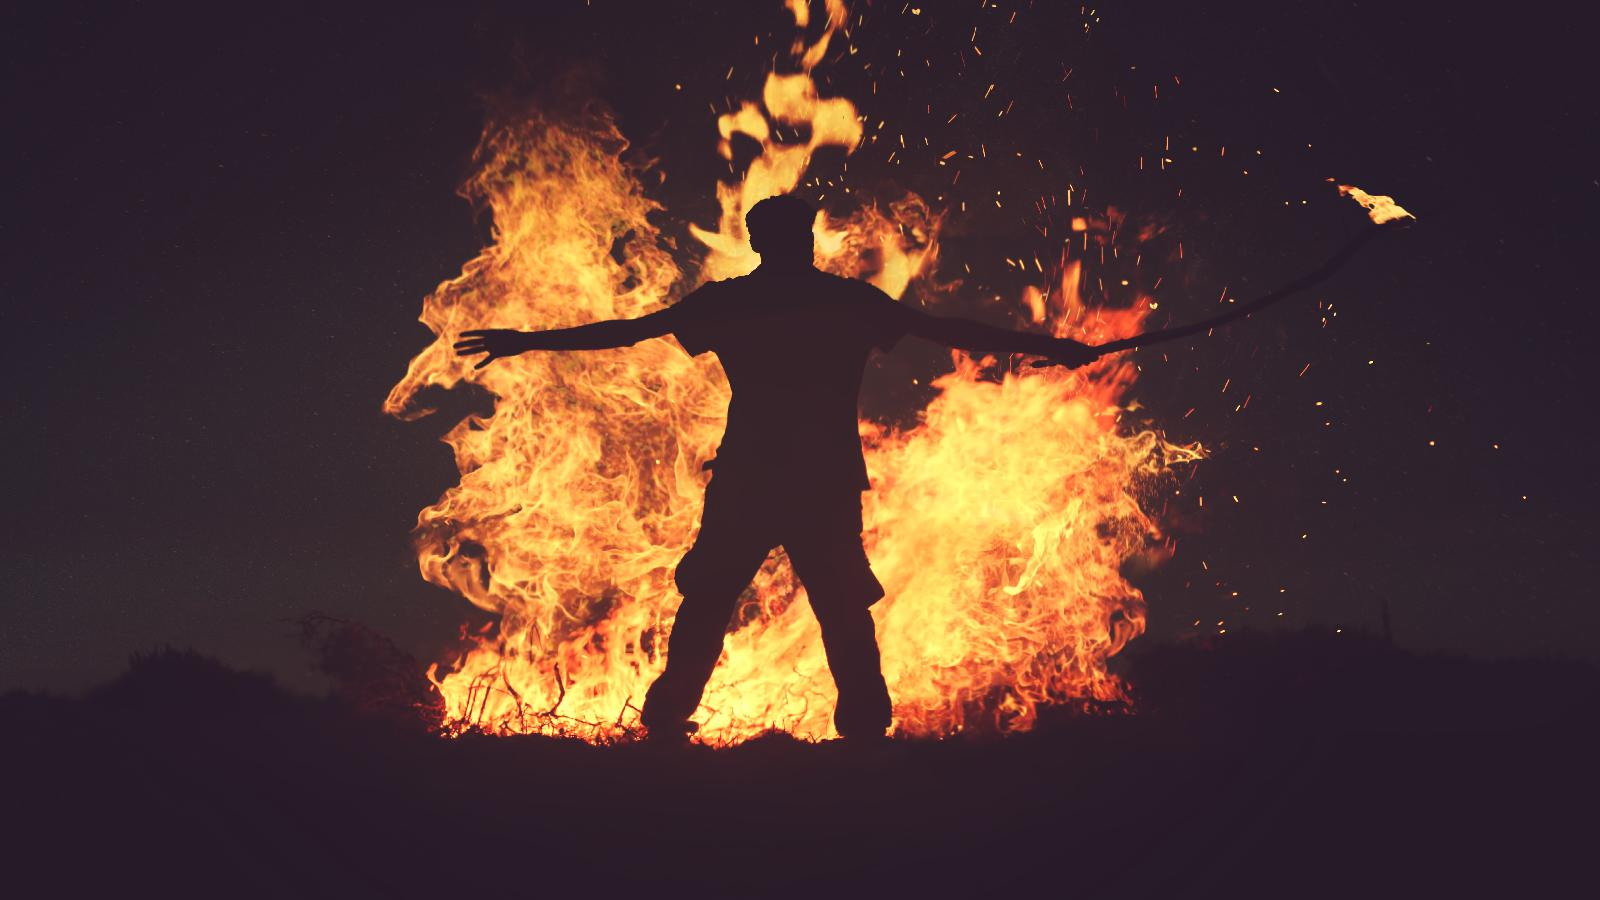 Binance burns $37.7 million worth of BNB